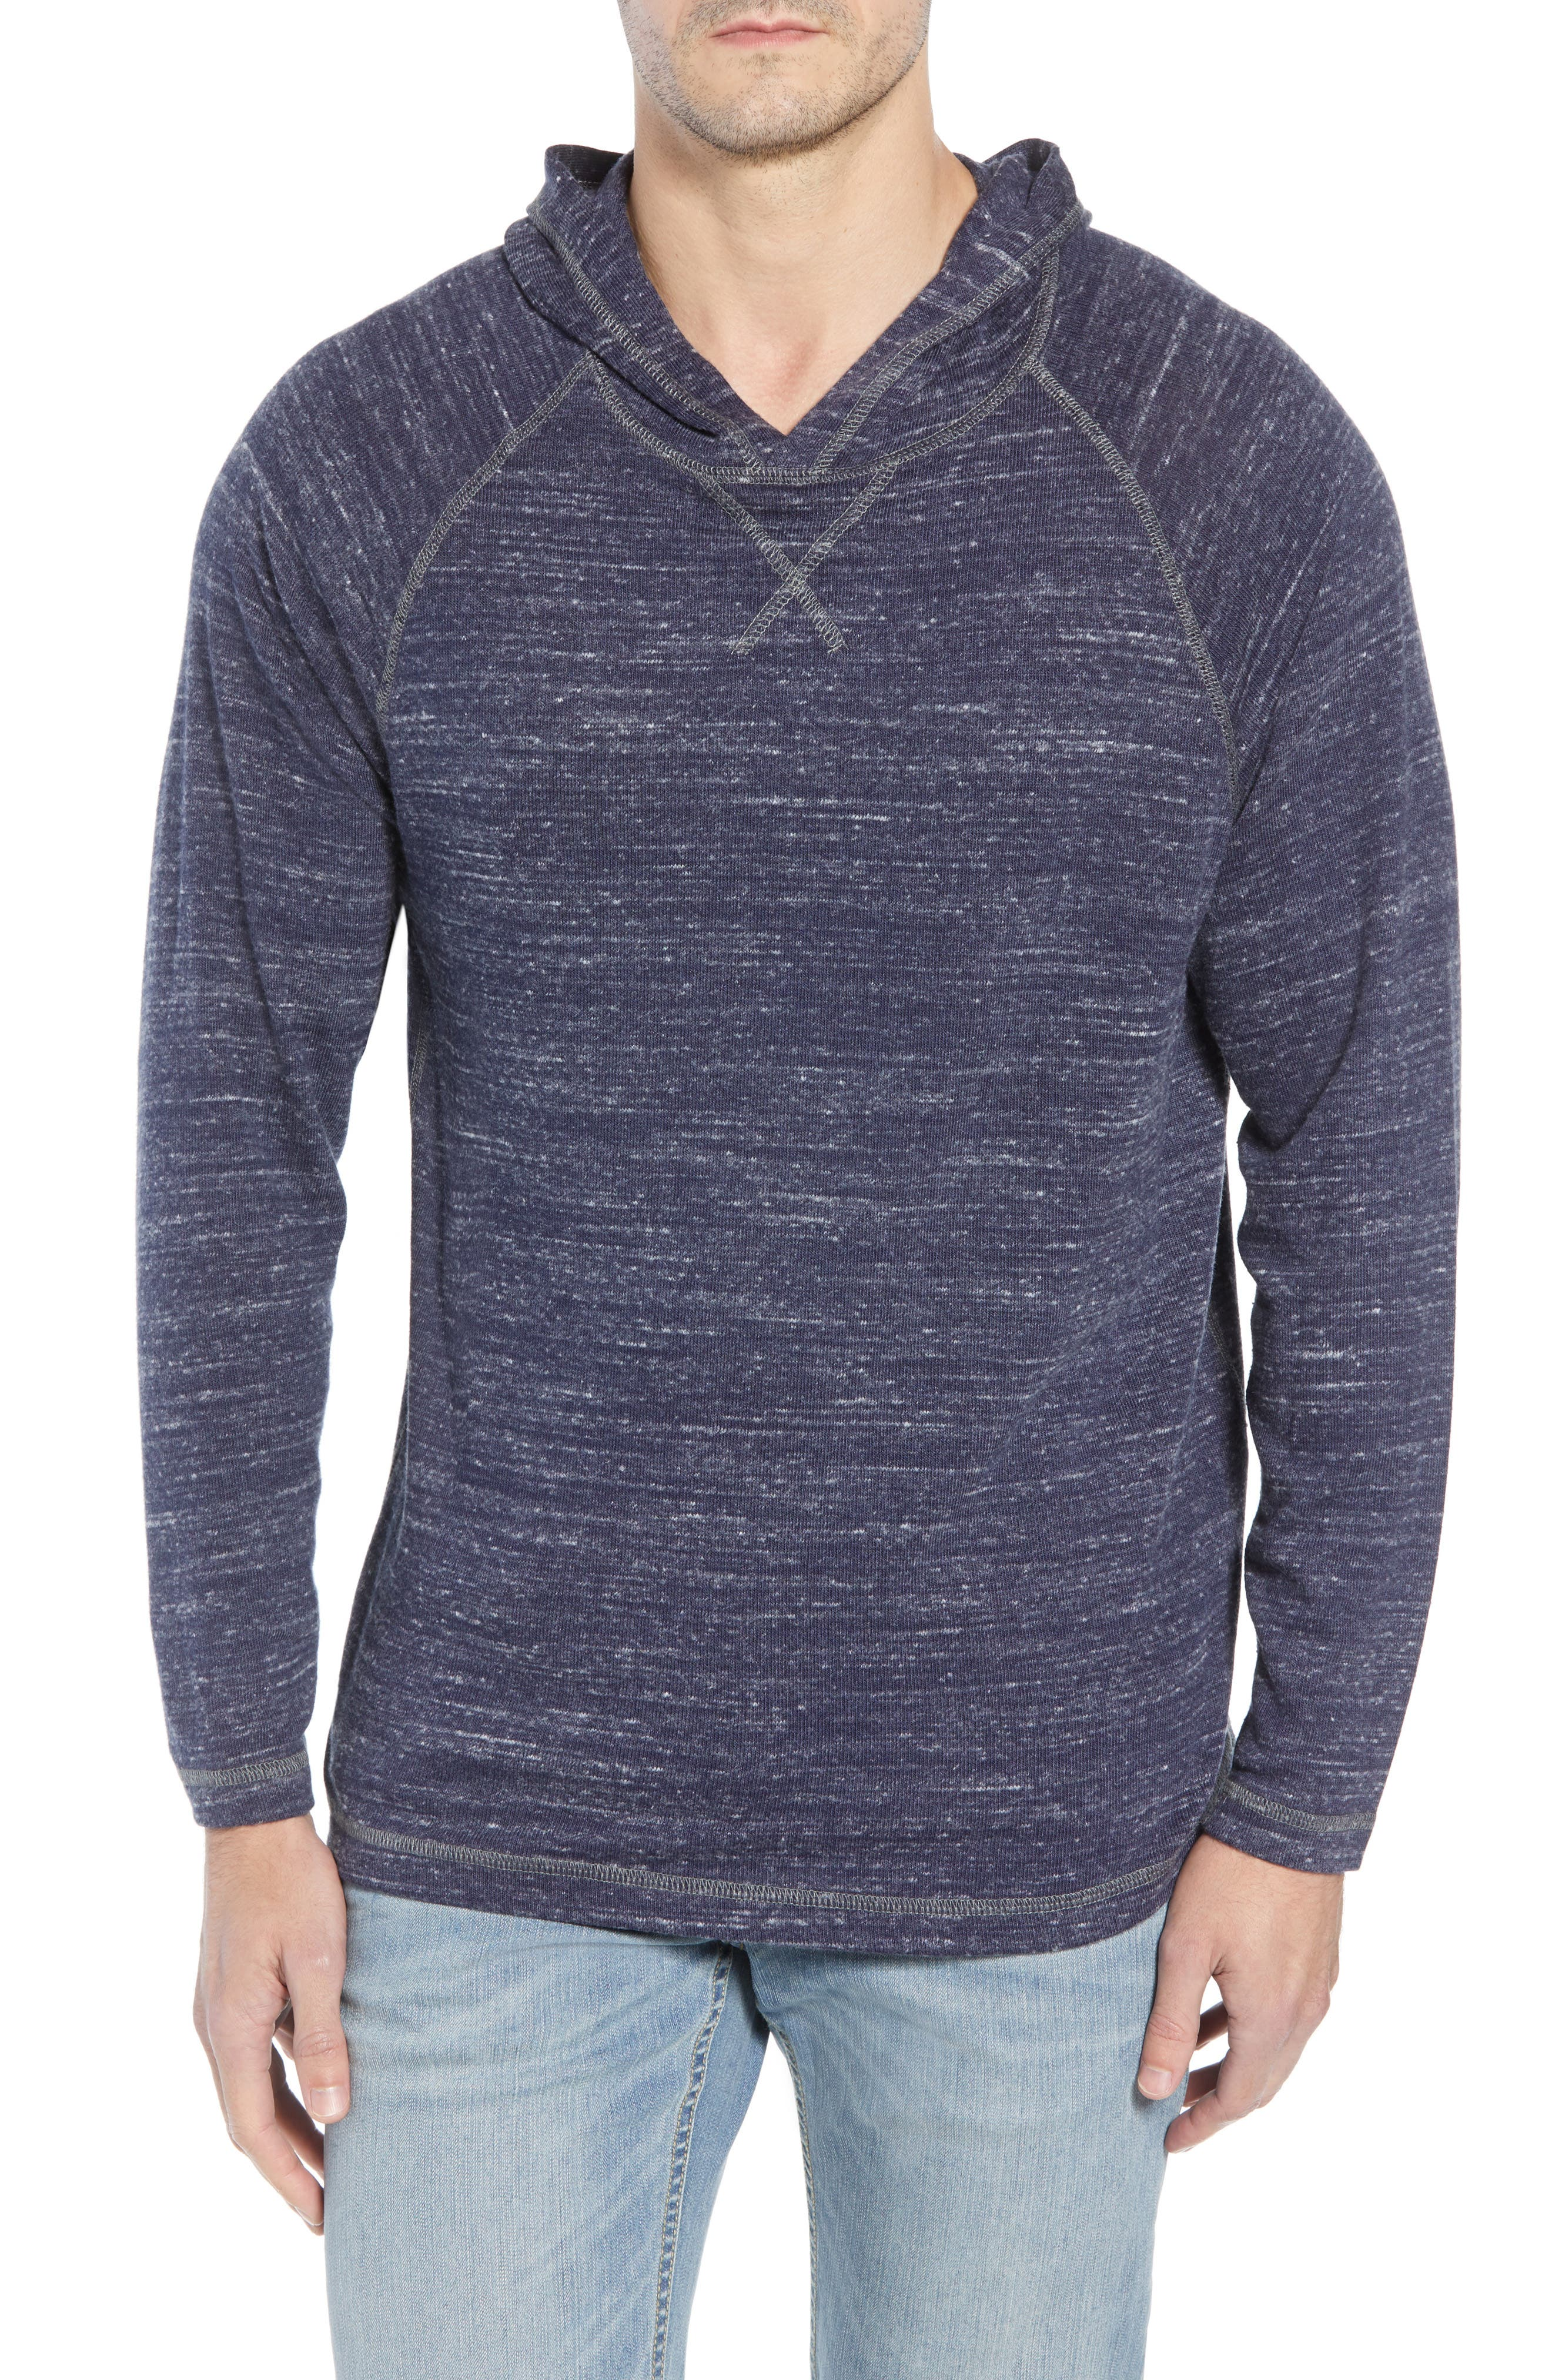 Leeward Cove Regular Fit Hoodie,                         Main,                         color, OCEAN DEEP HEATHER